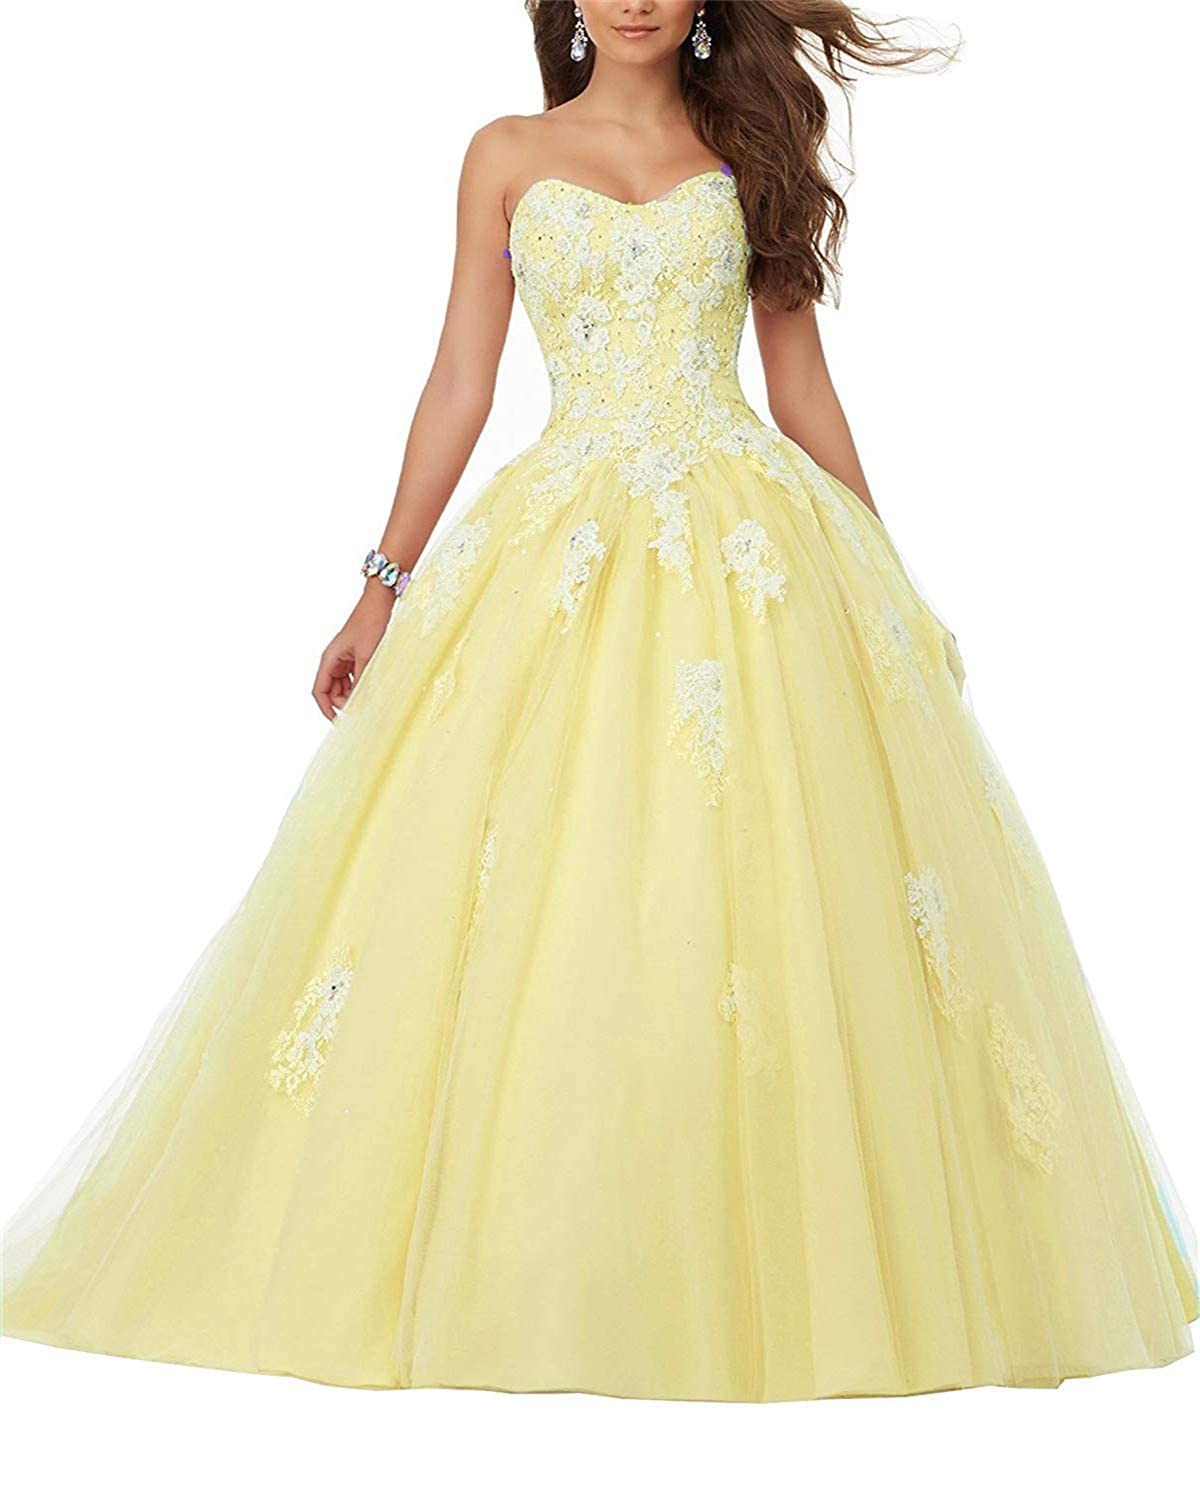 Yellow Sophie Women's Strapless Sweetheart Lace Applique Sweet 15 Ball Gowns Quinceanera Dress S198